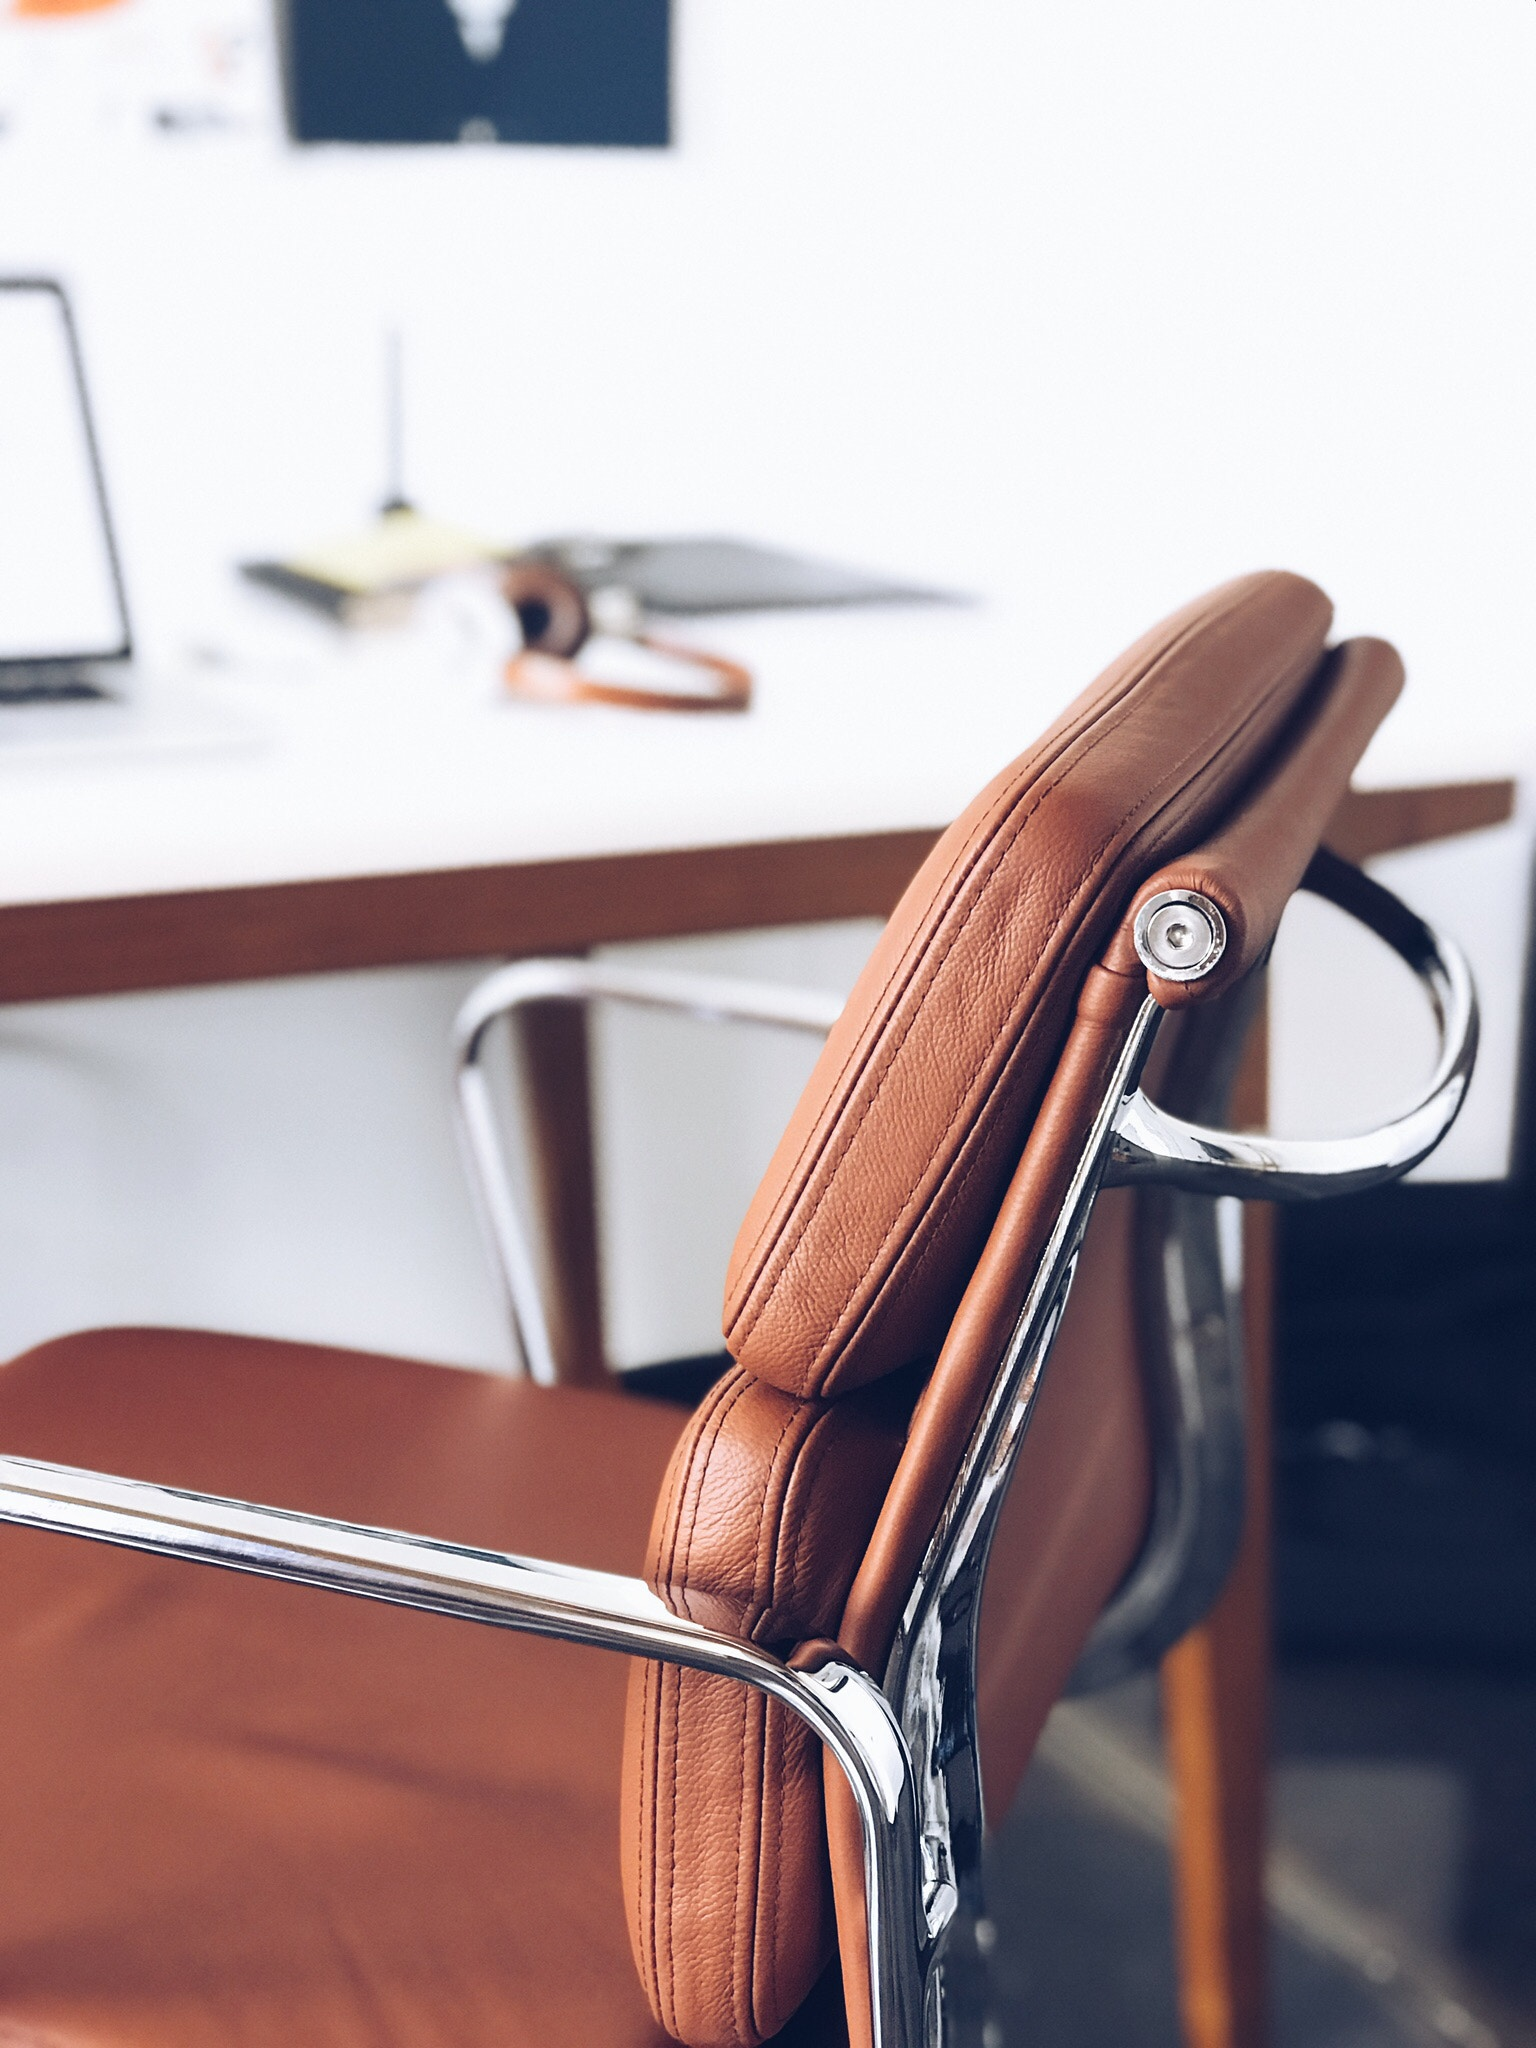 How to Find a Comfy Desk Chair